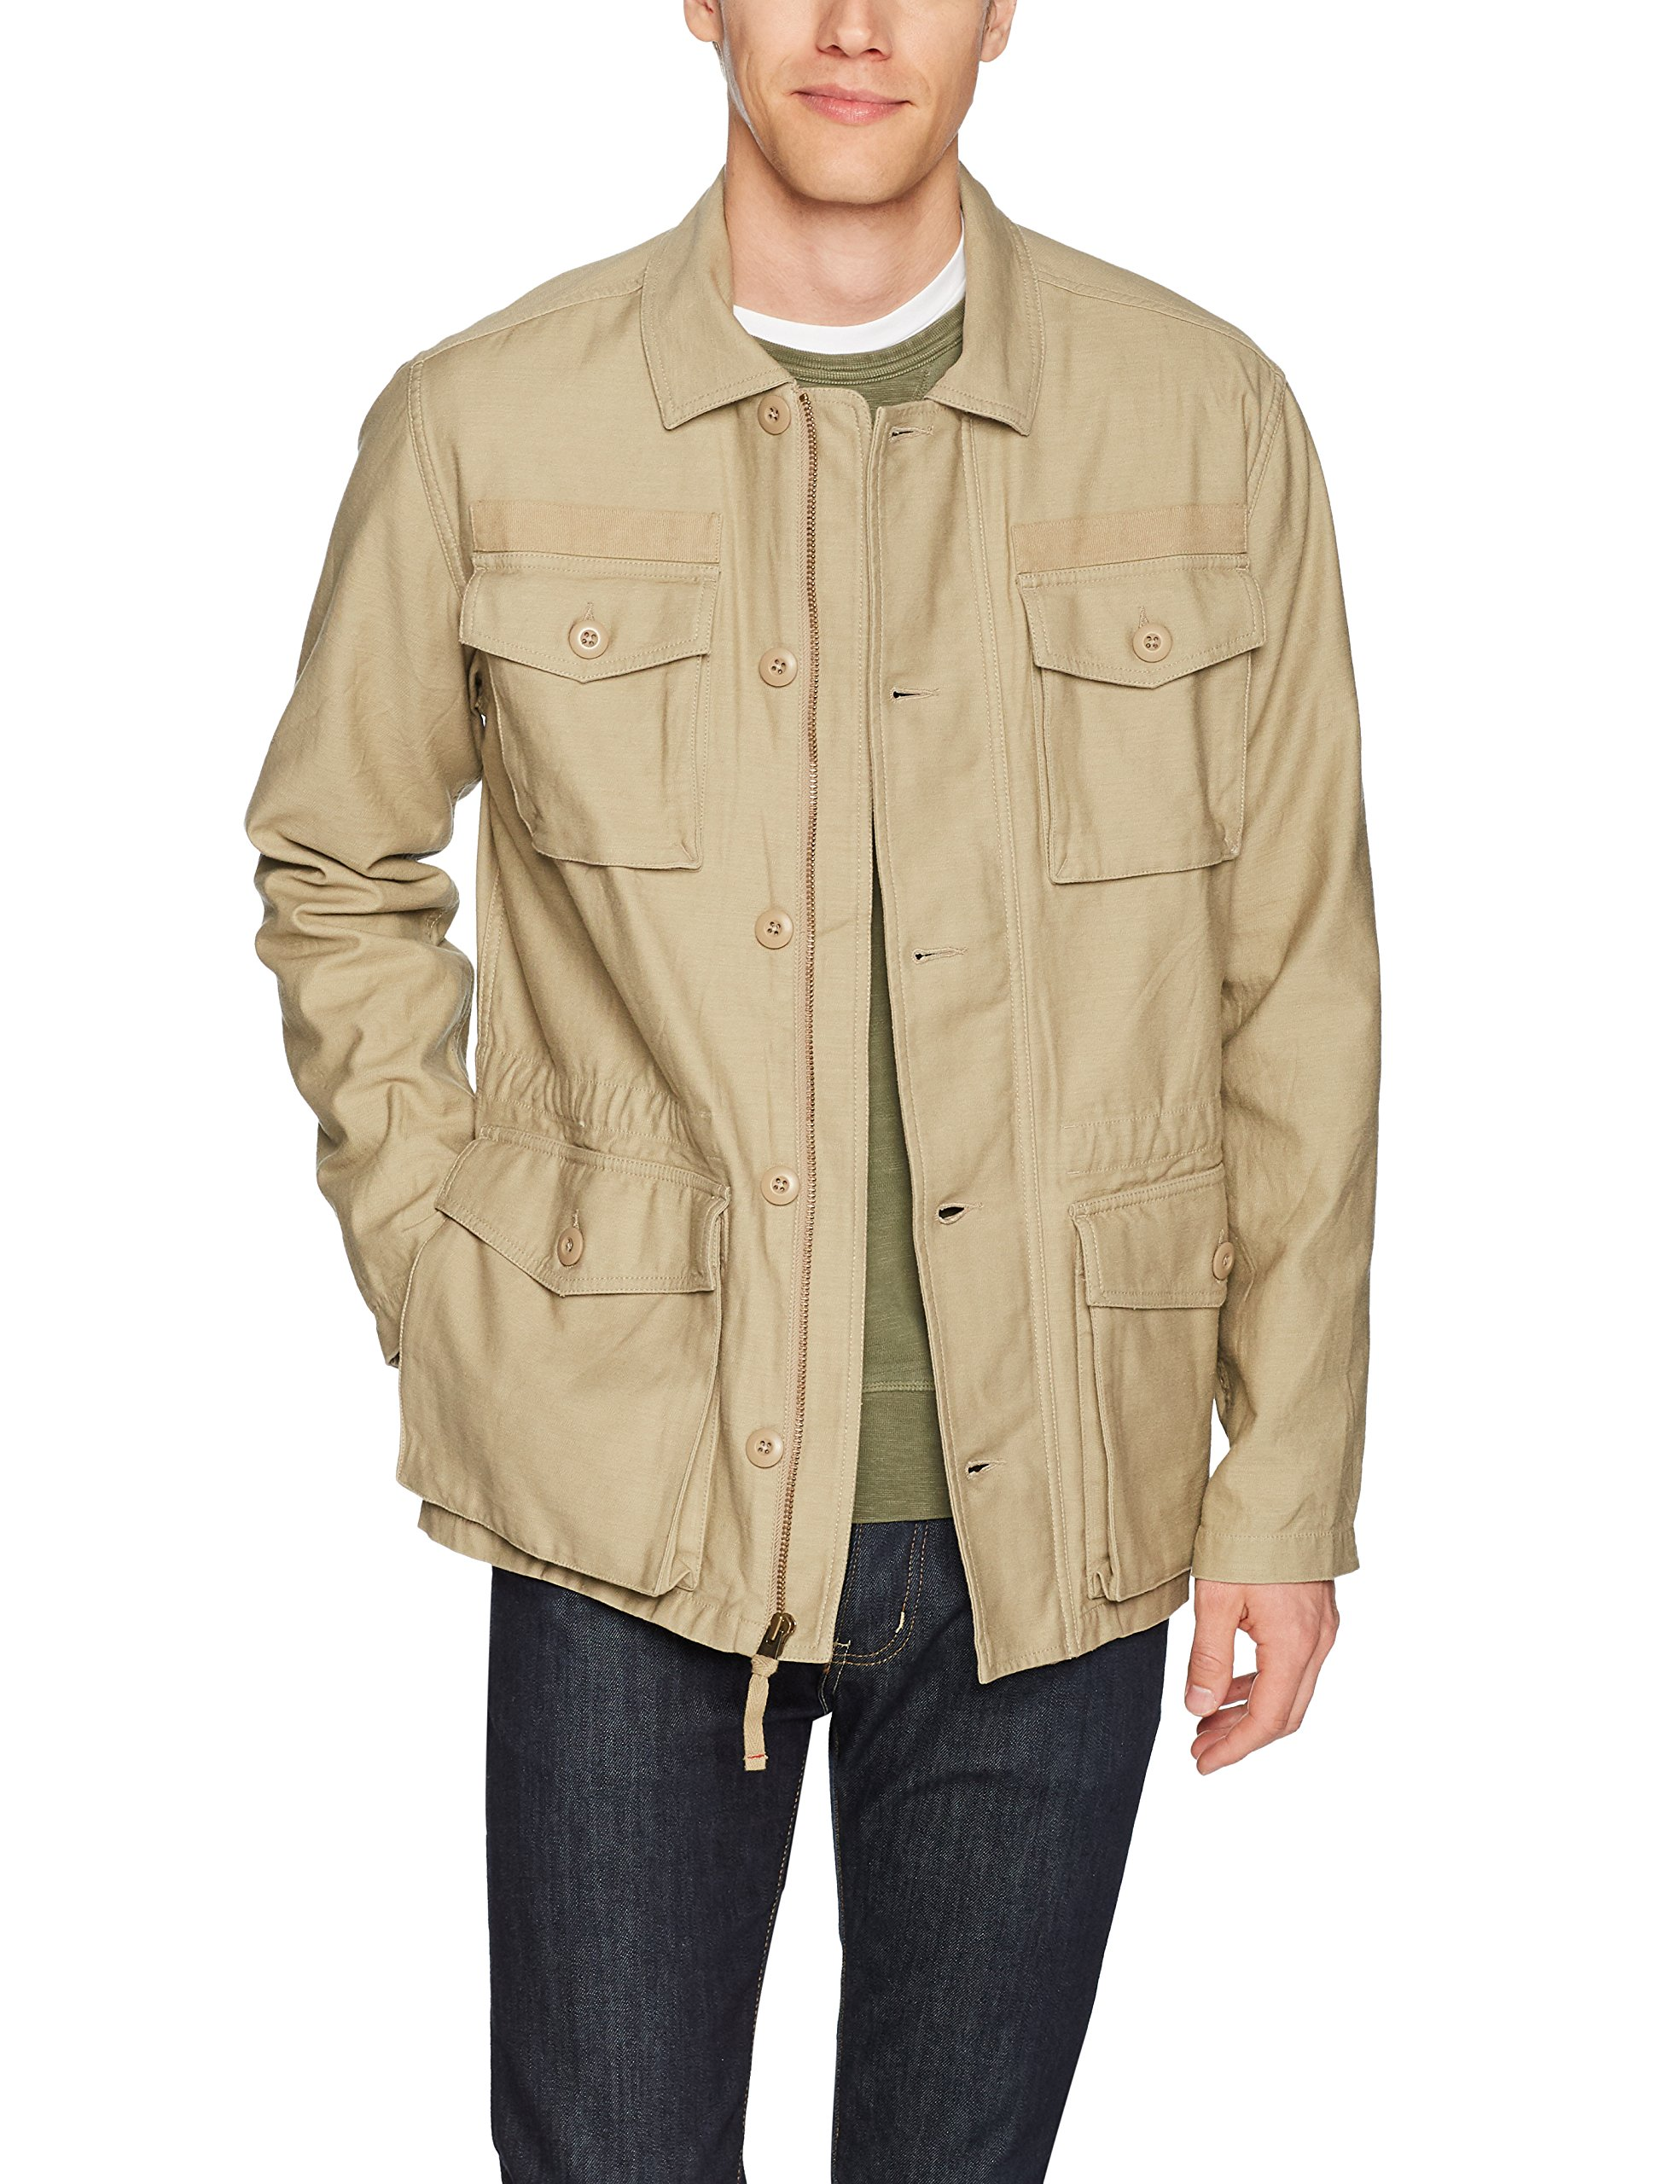 Goodthreads Men's 4-Pocket Military Jacket, New British Khaki, Medium by Goodthreads